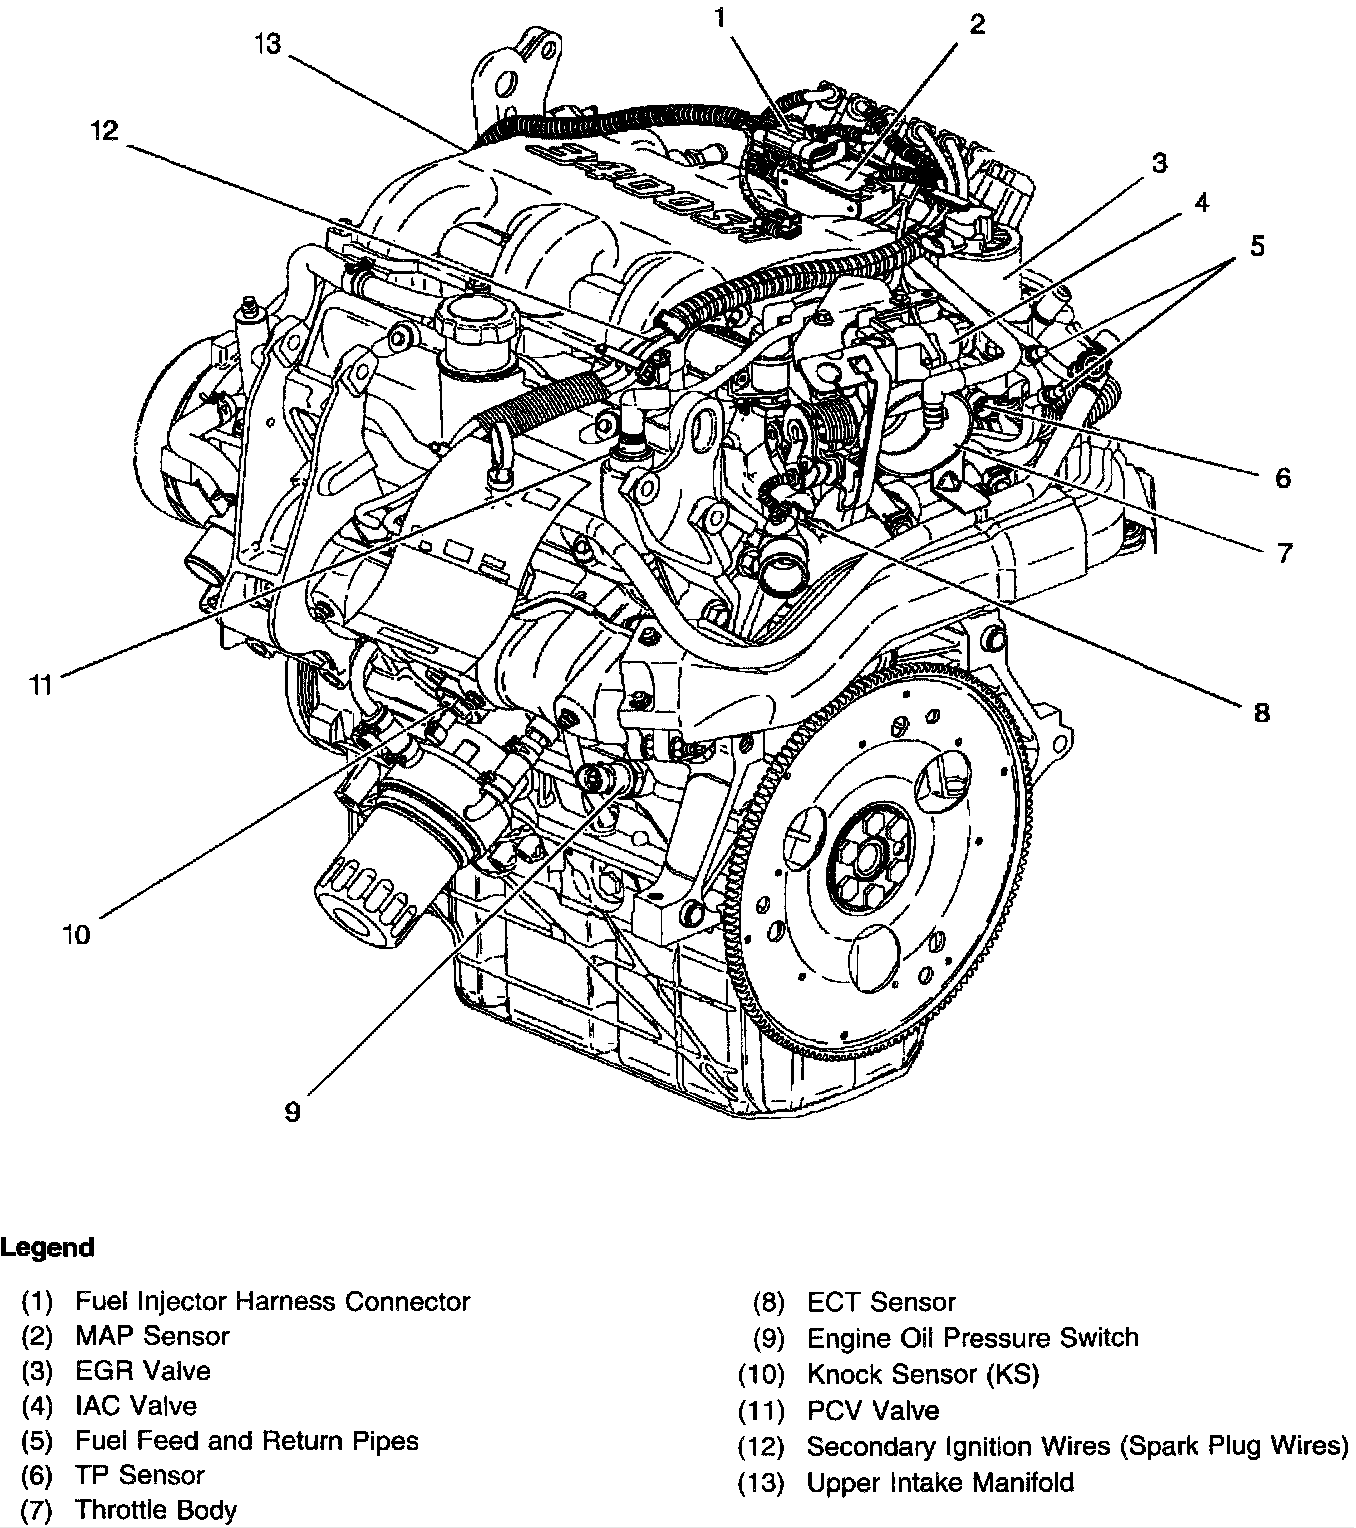 Honda V6 Engine Hoses Diagram